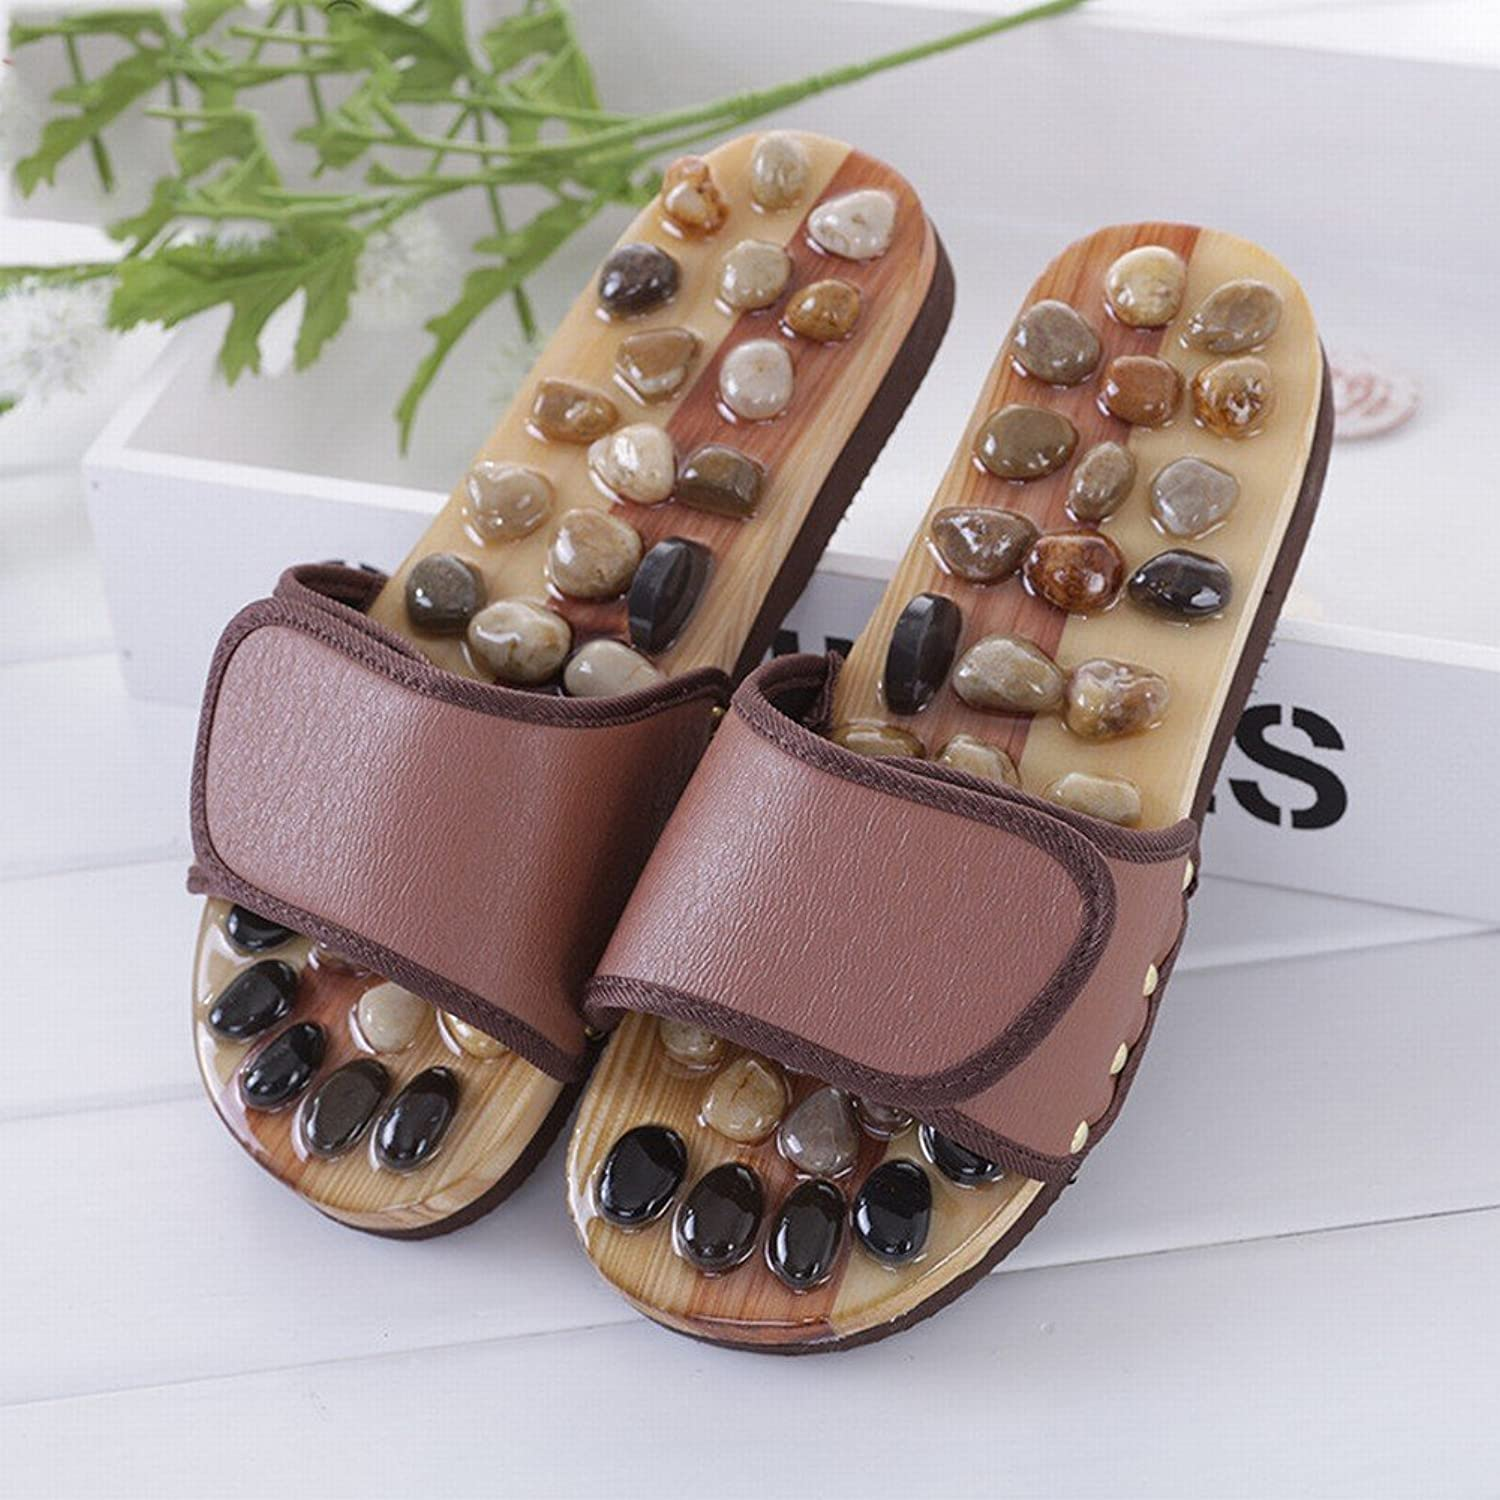 SED Autumn Foot Acupuncture Point Health Care Pebble Massage Men and Women Couples Massage shoes Home Sandals